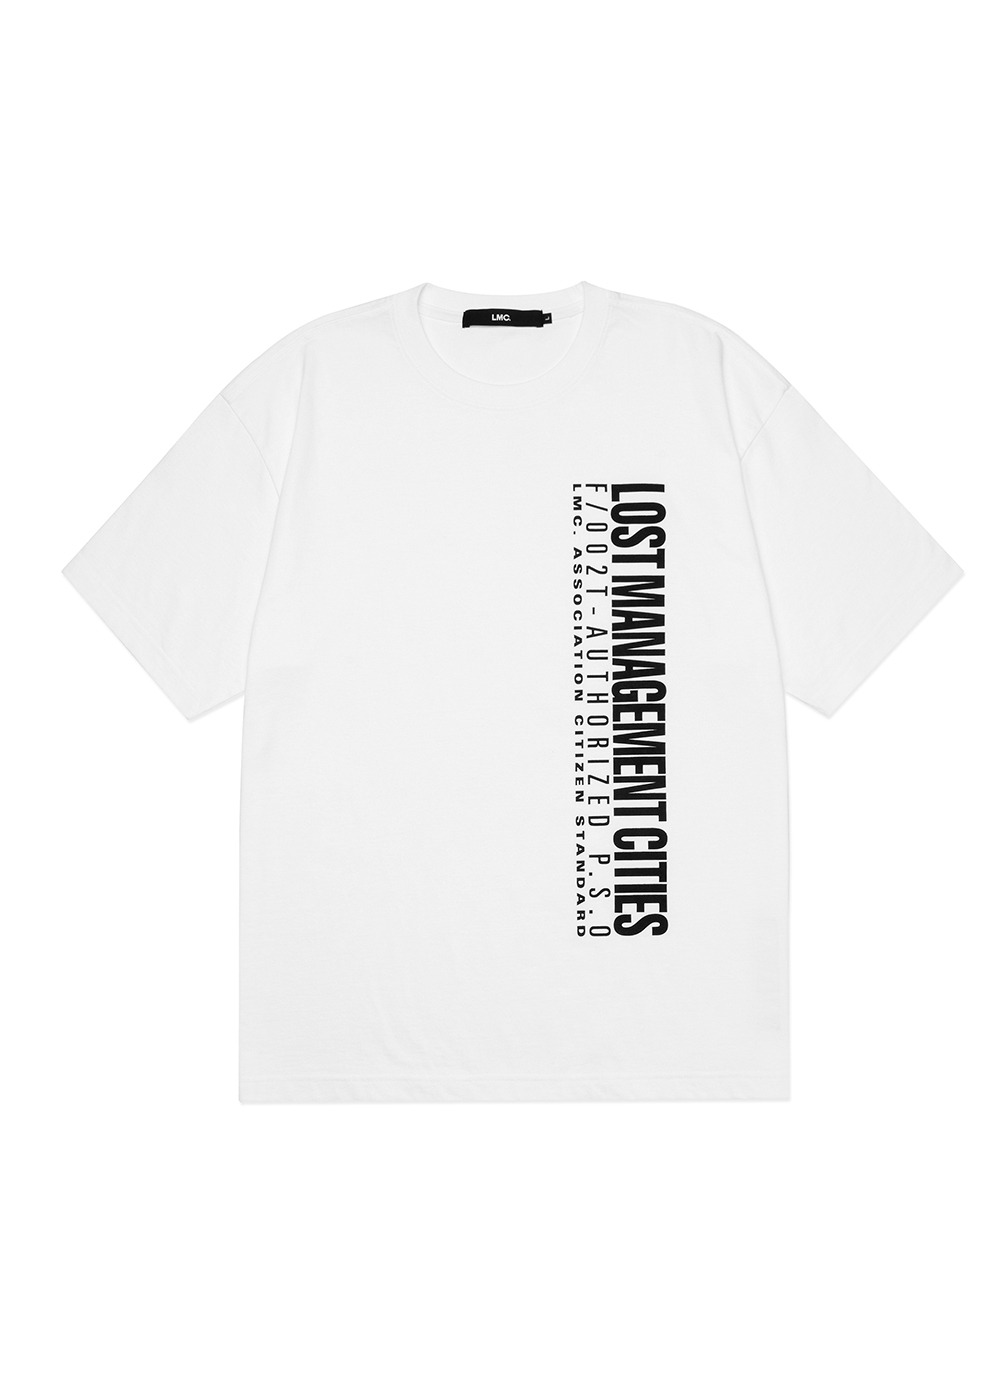 LMC AUTHORIZED LOGO TEE white